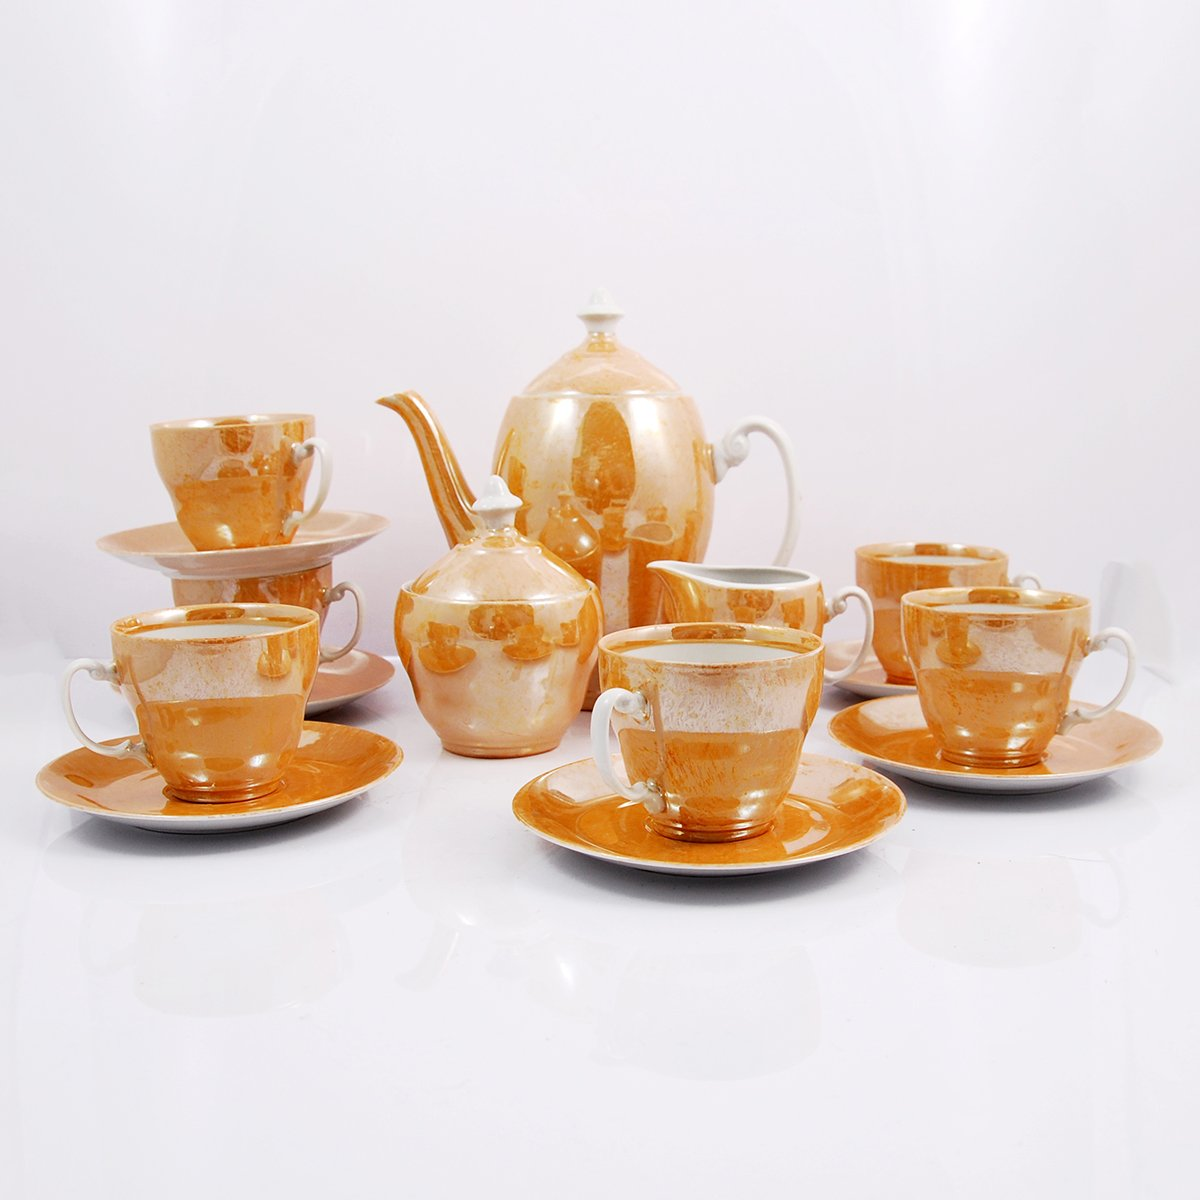 Coffee Set From Wloclawek 1970s For Sale At Pamono